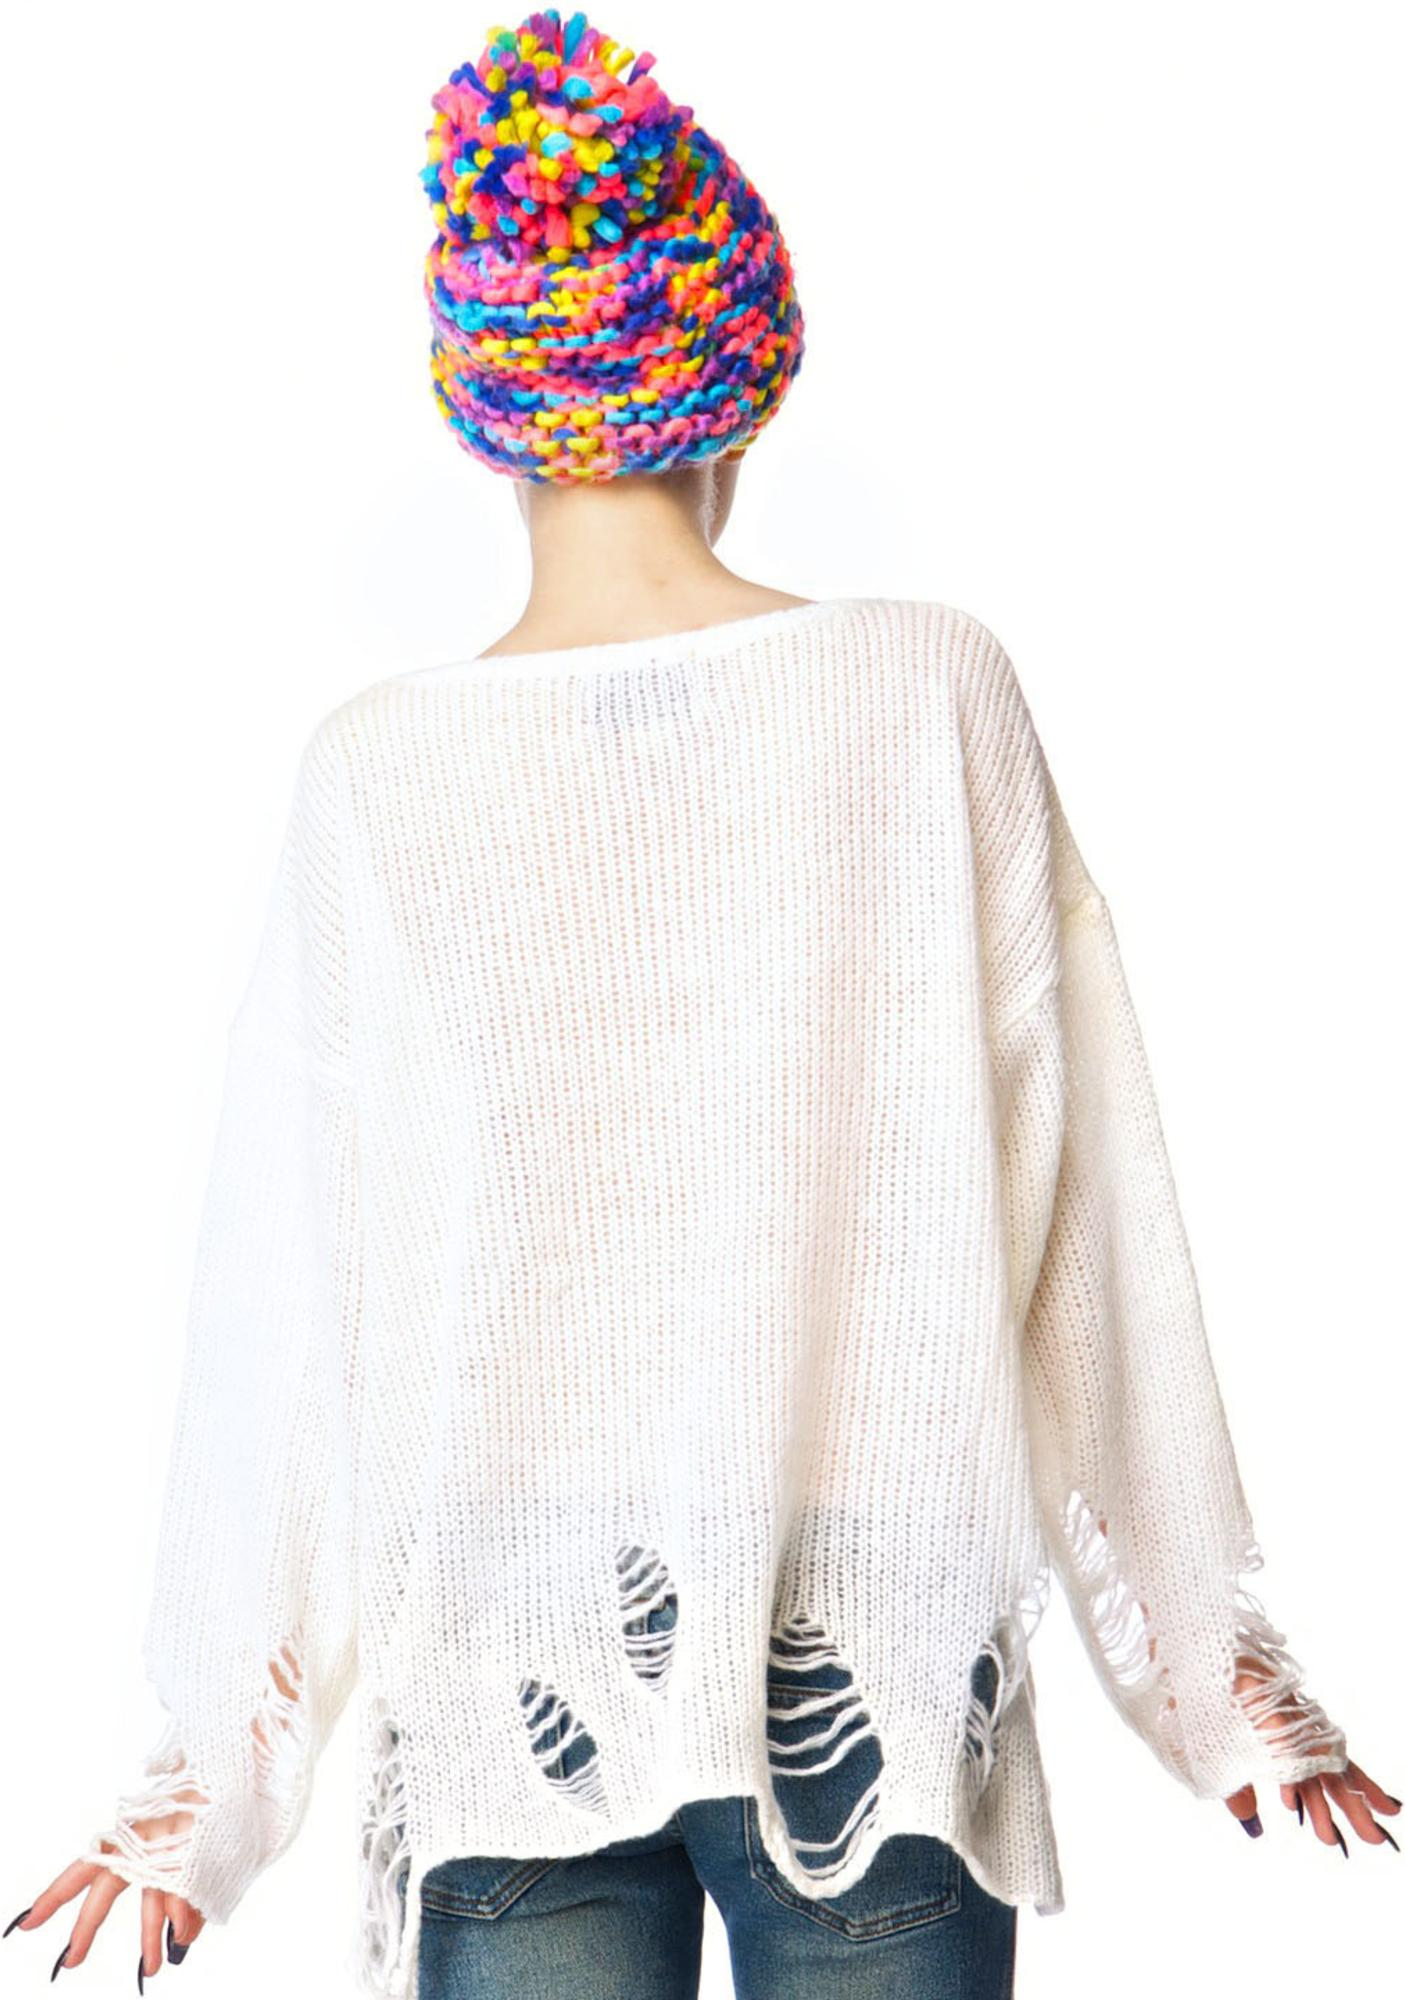 Wildfox Couture Rainbow Dreamer Lennon Sweater